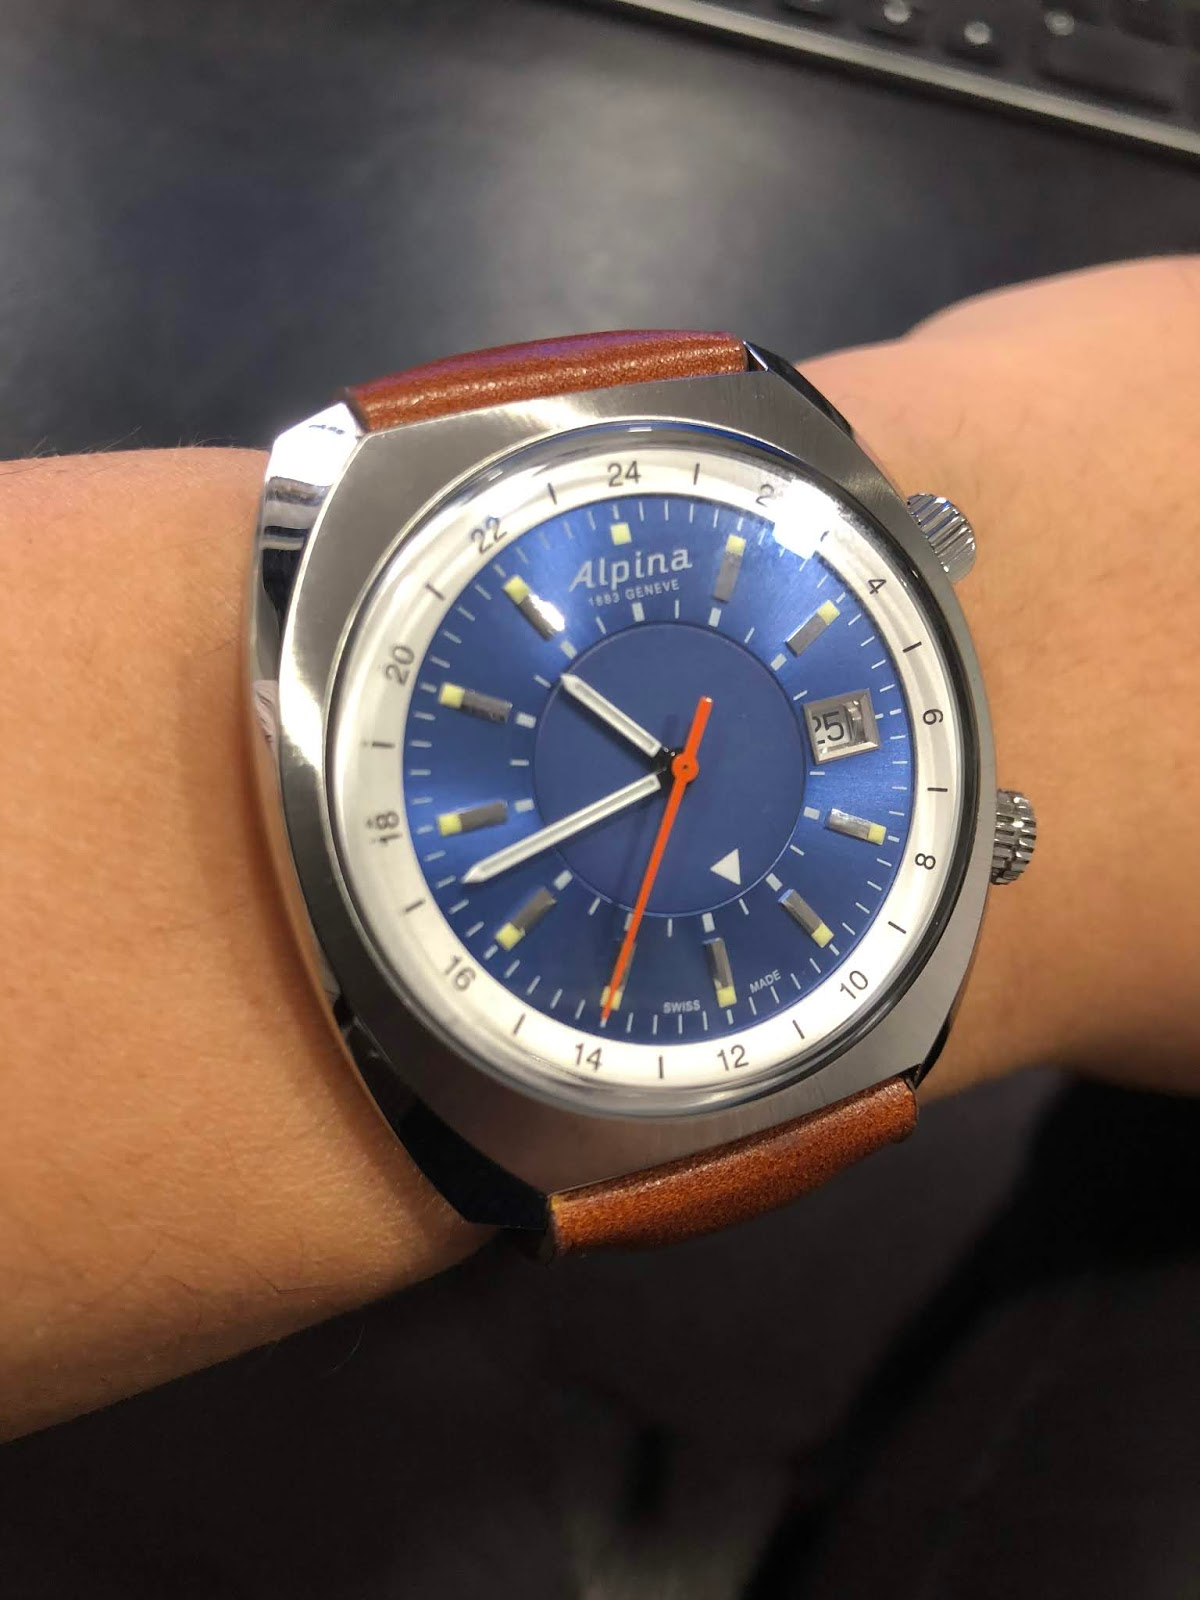 8d23d383bd574 I saw Gnomon Watches of Singapore putting up for sale the Alpina Startimer  Pilot Heritage GMT last month. I tried getting one but was unsuccessful.